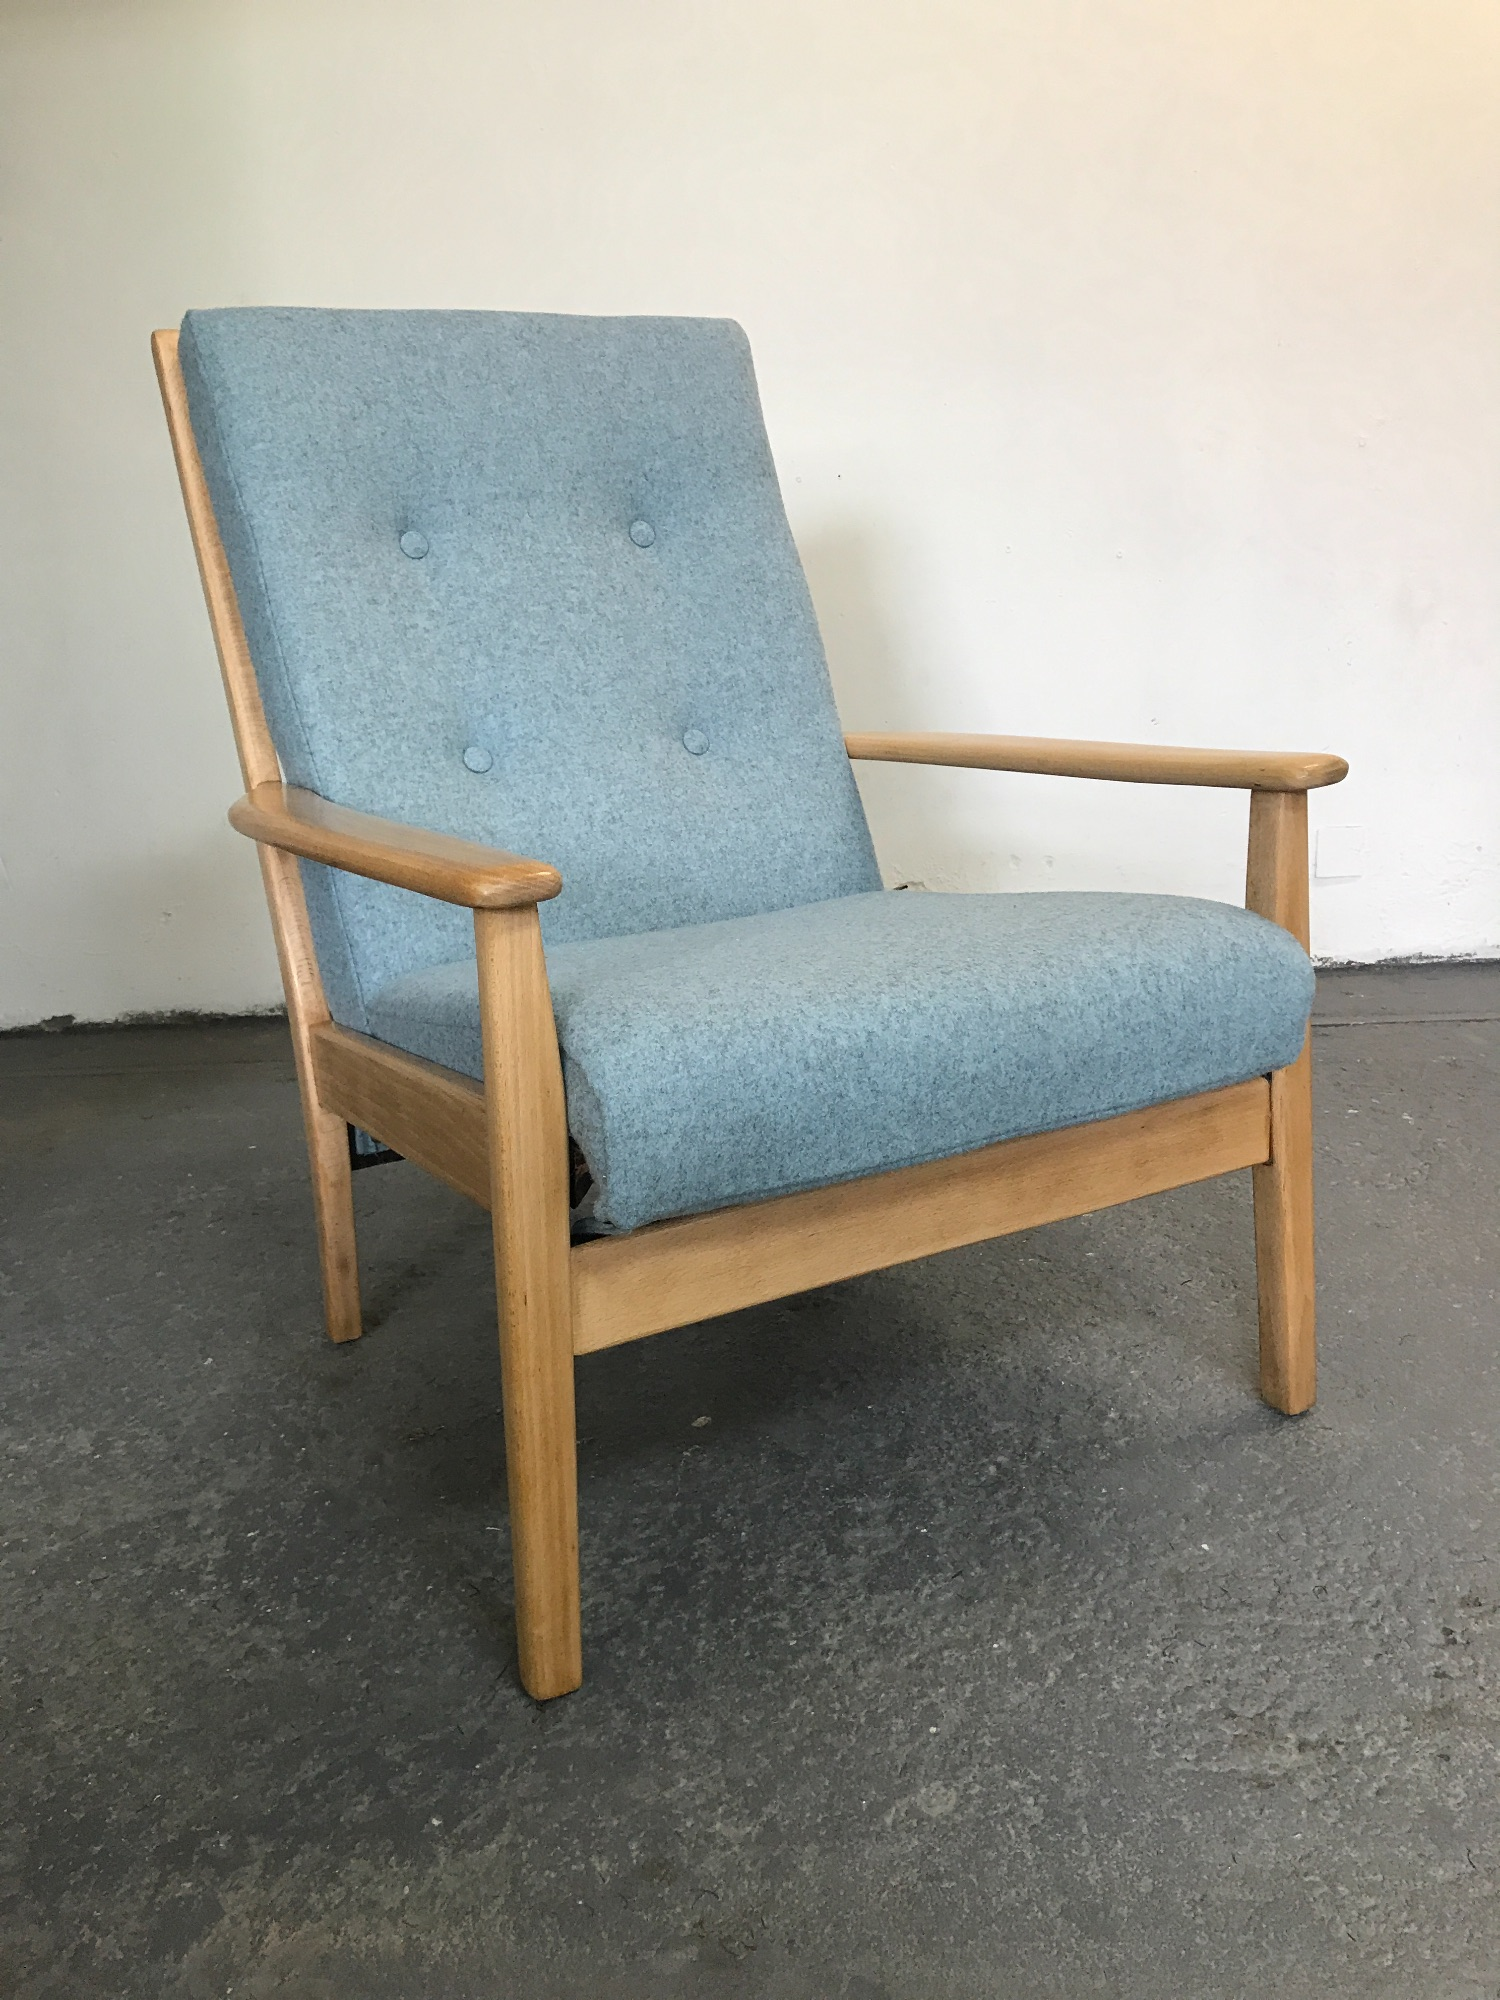 Vintage Cintique chair reupholstered in Camira Synergy wool felt  in pale blue